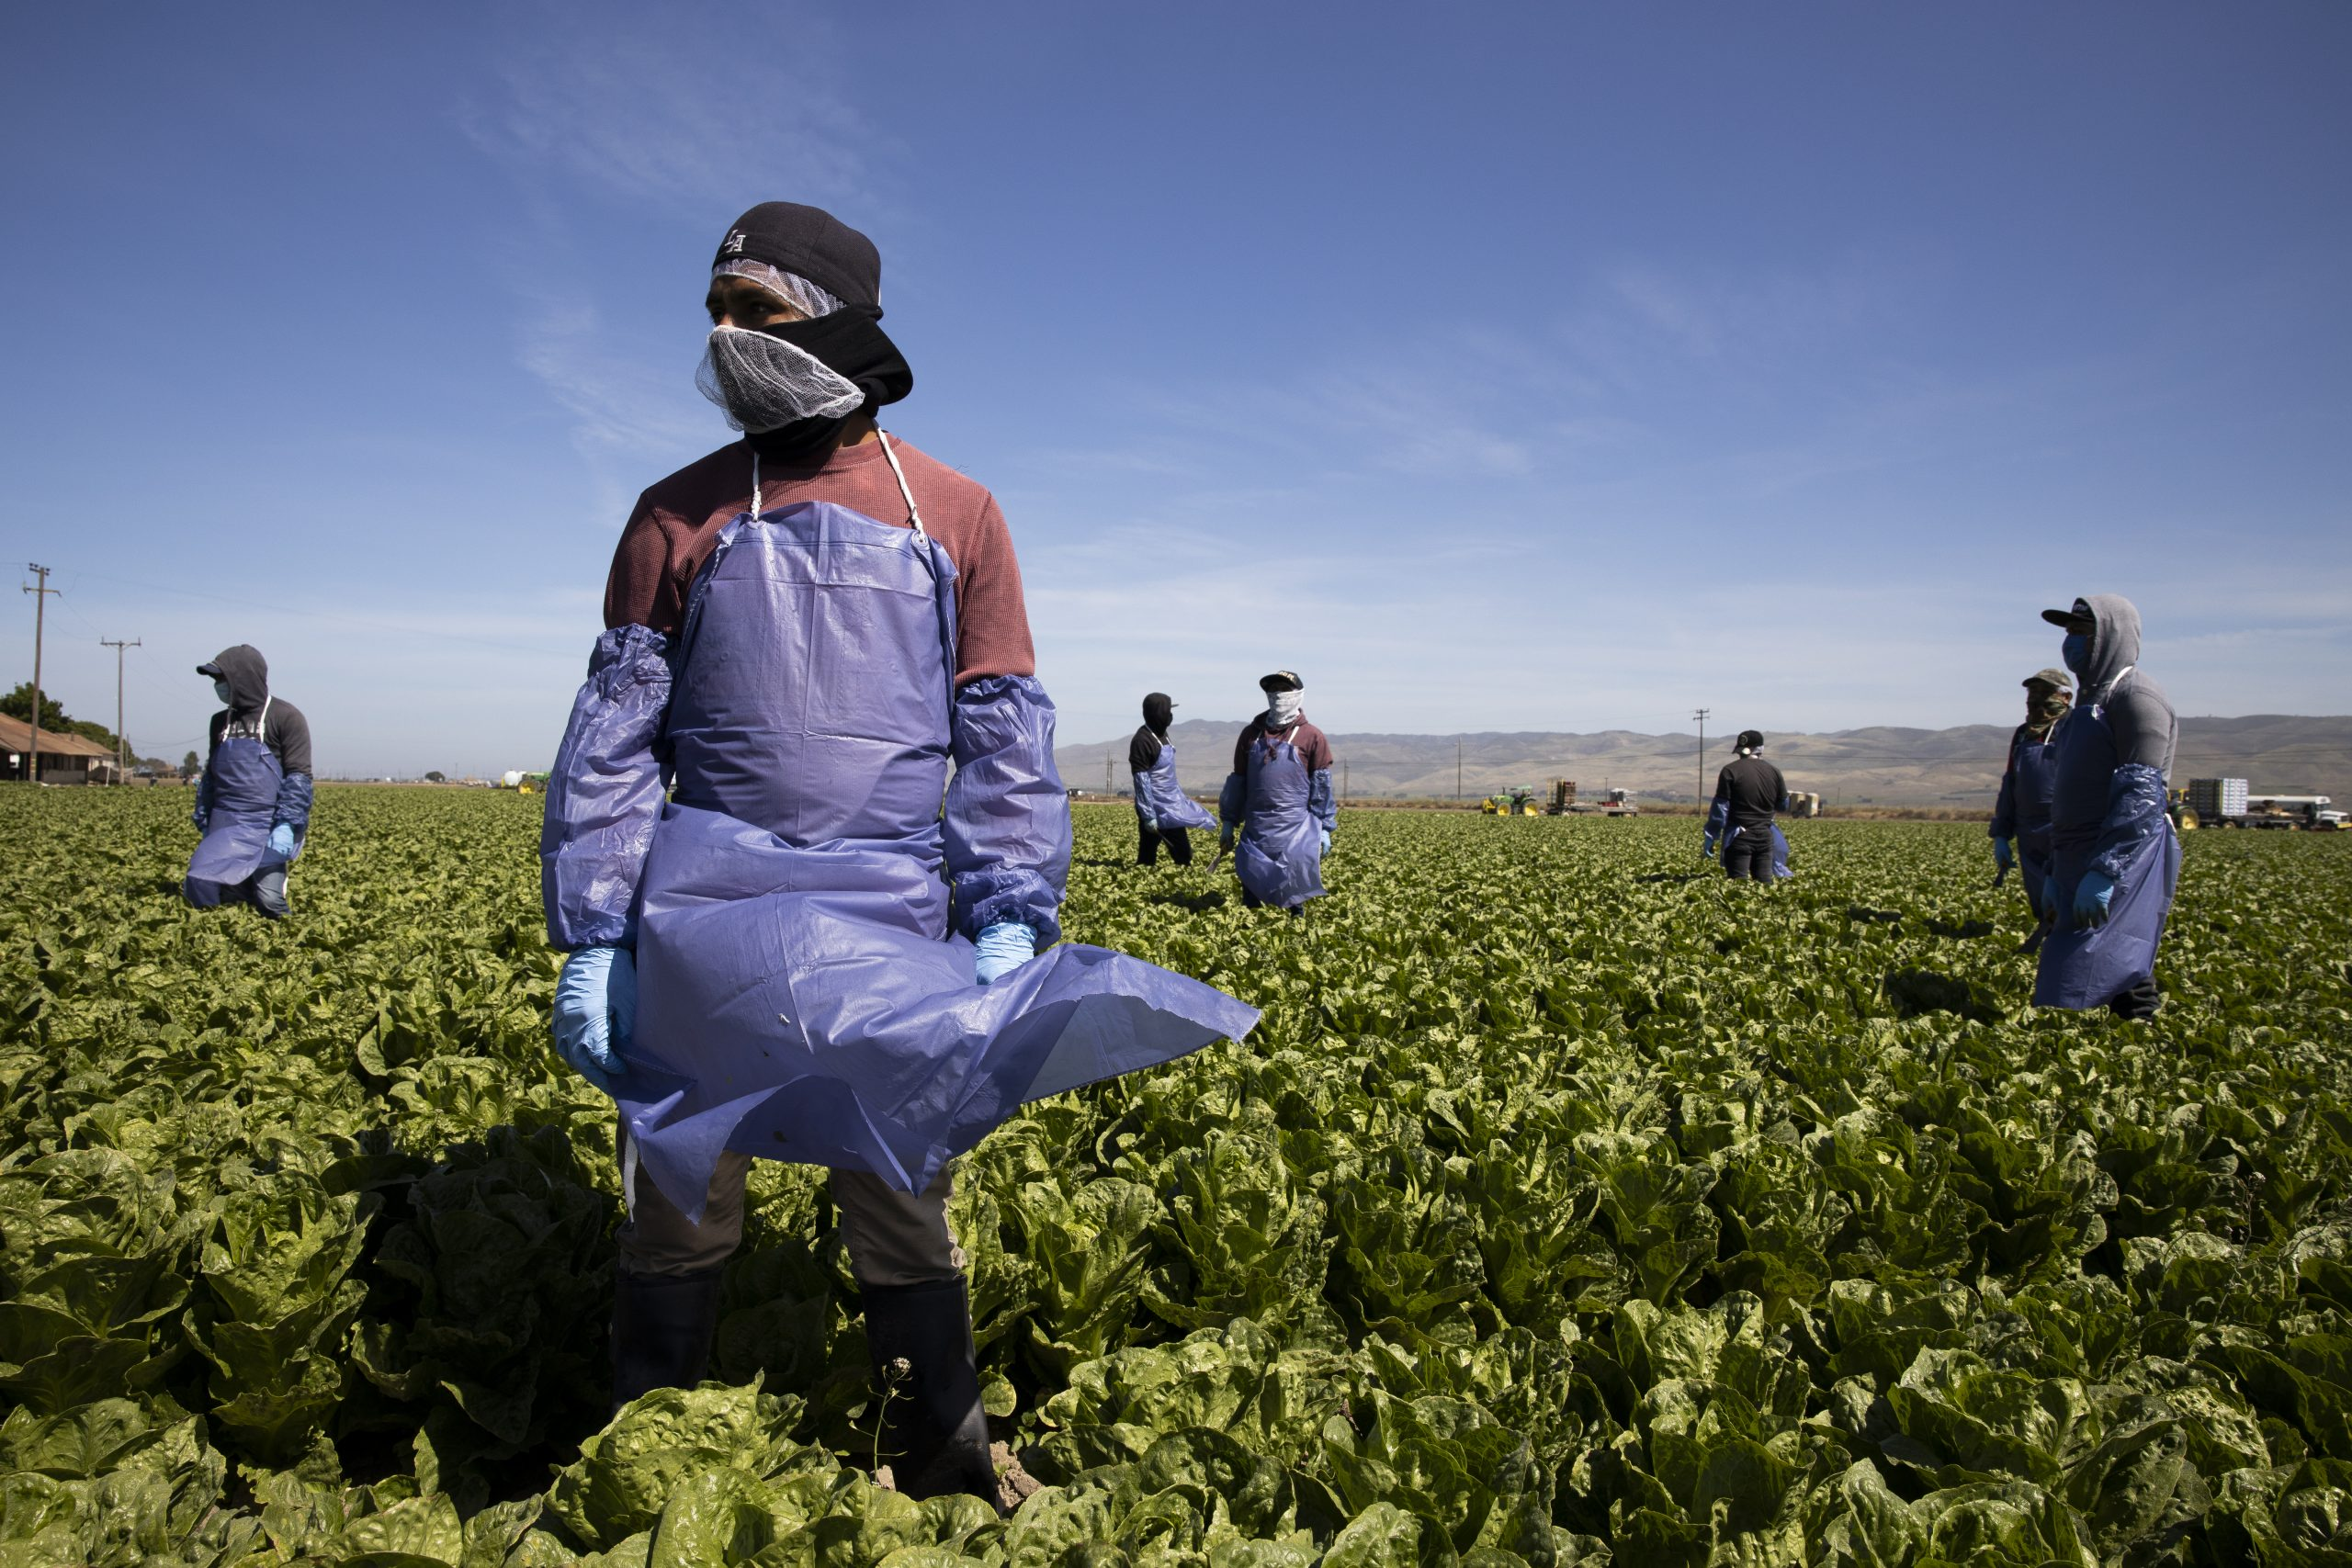 Patchwork of bills and proposals leaves most undocumented frontline workers unprotected - Prism